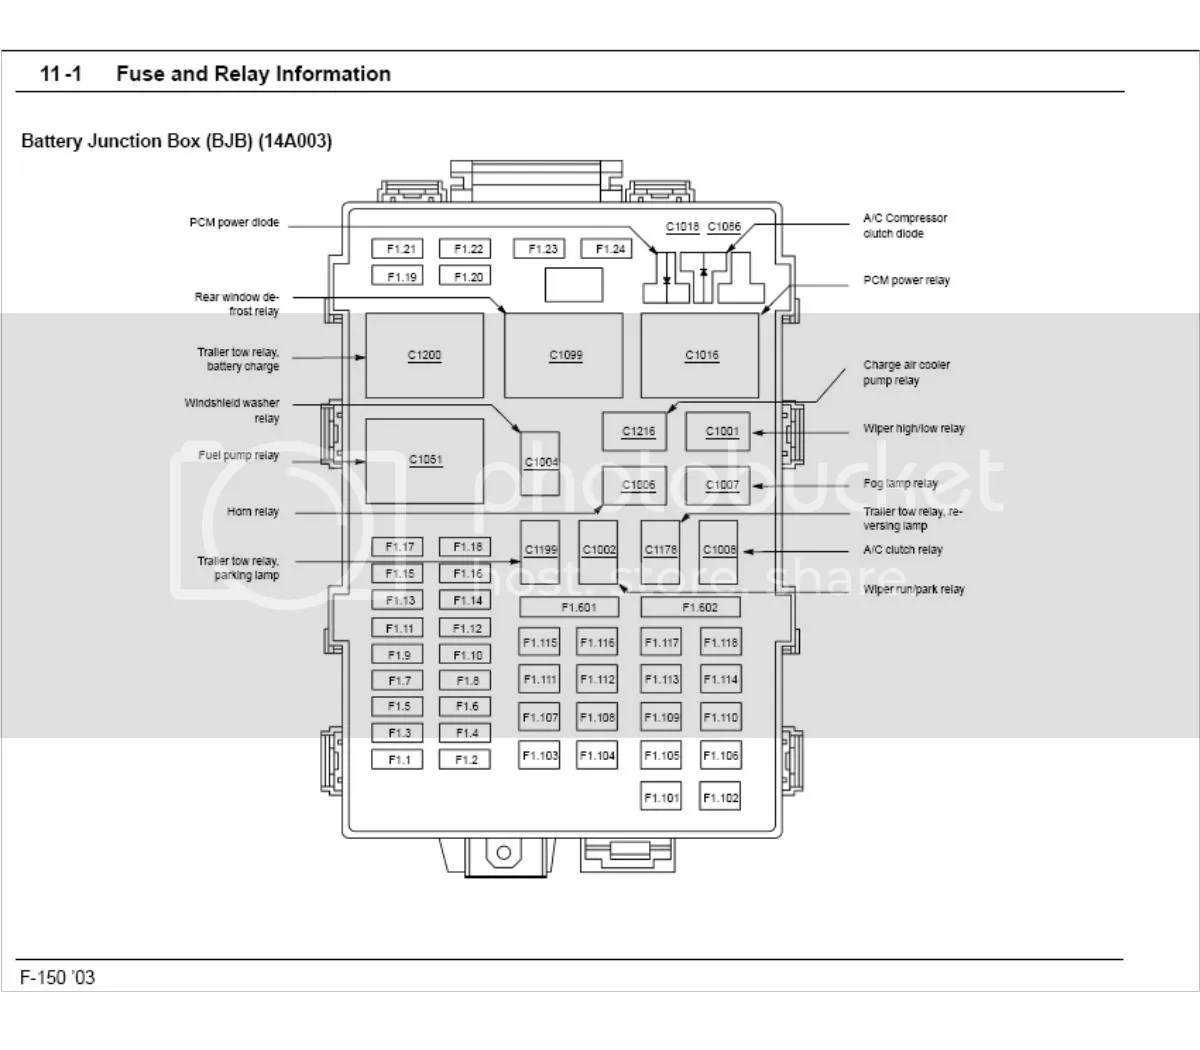 Ford F650 Fuse Diagram Ford F650 Fuse Box